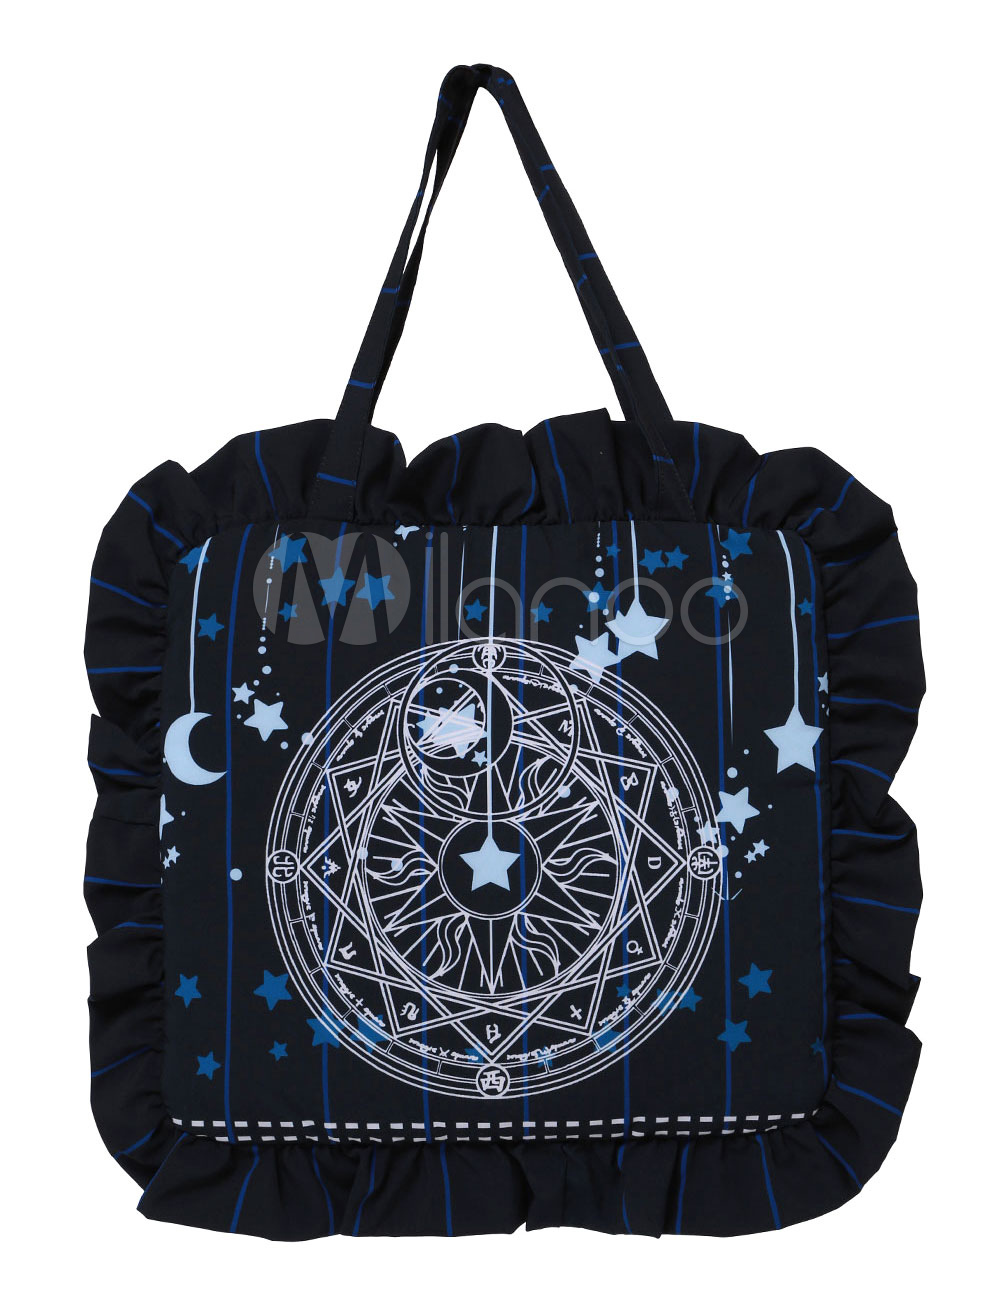 Buy Sweet Lolita Bag Black Star Printed Lolita Handbag for $15.19 in Milanoo store